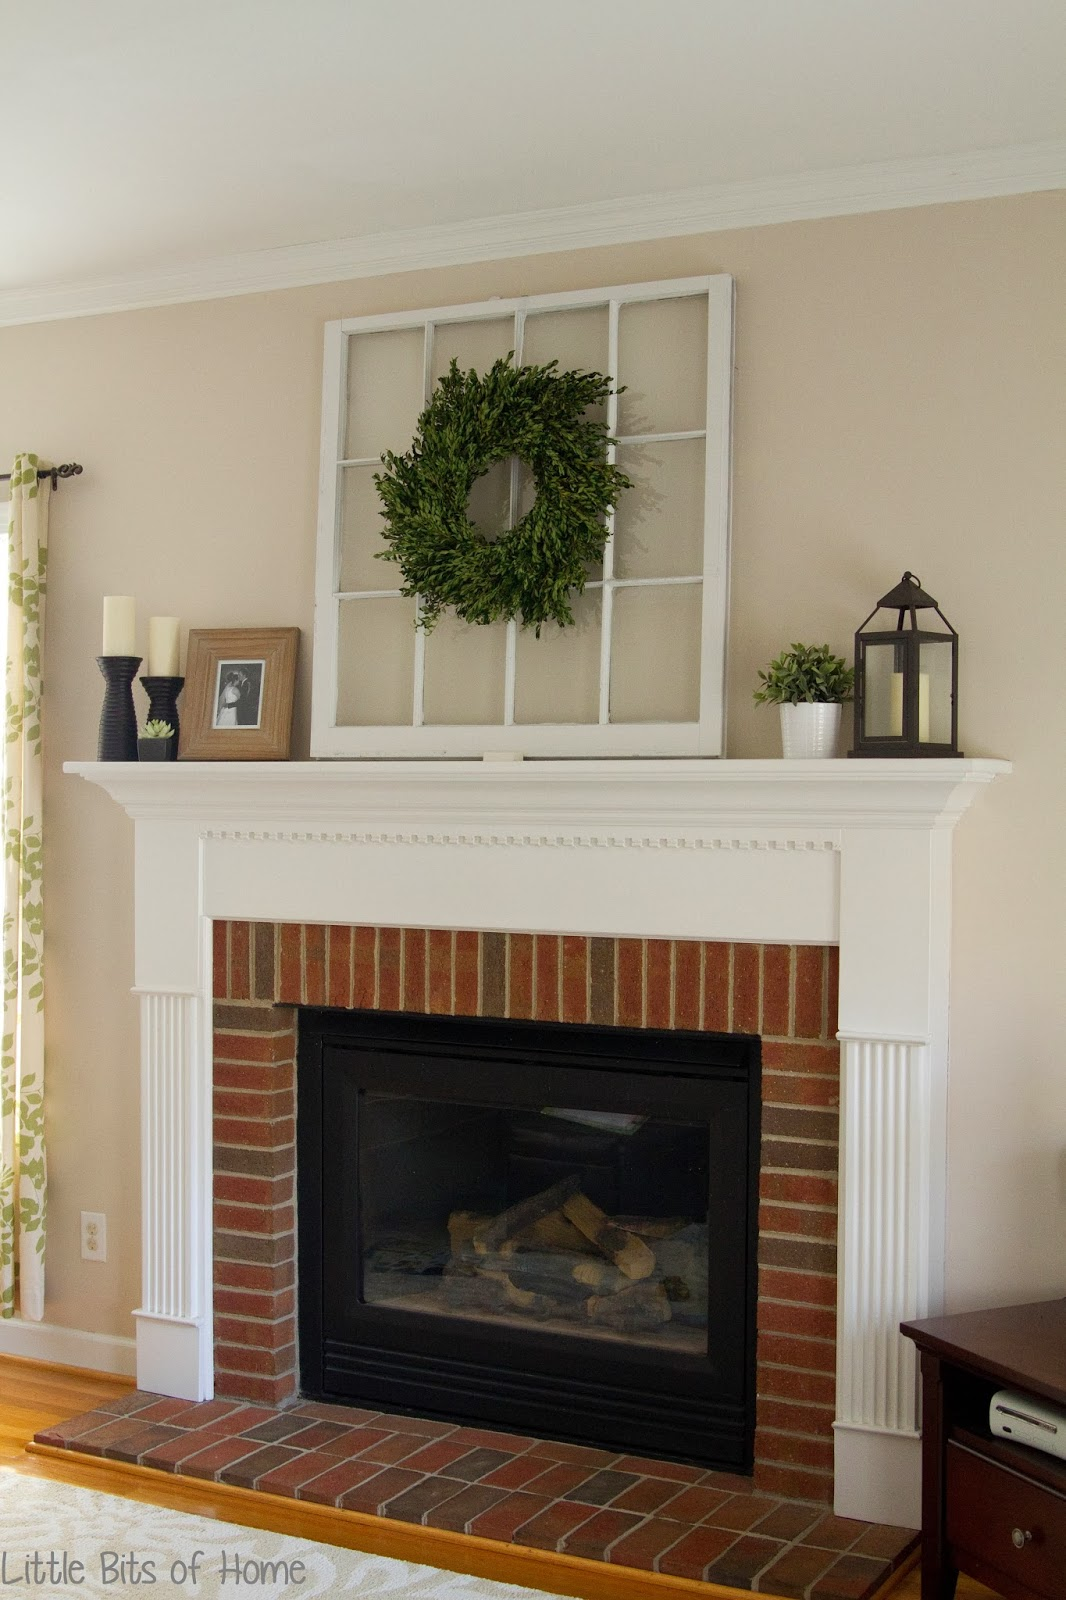 Little bits of home everyday fireplace decor - Fireplace mantel decor ideas ...